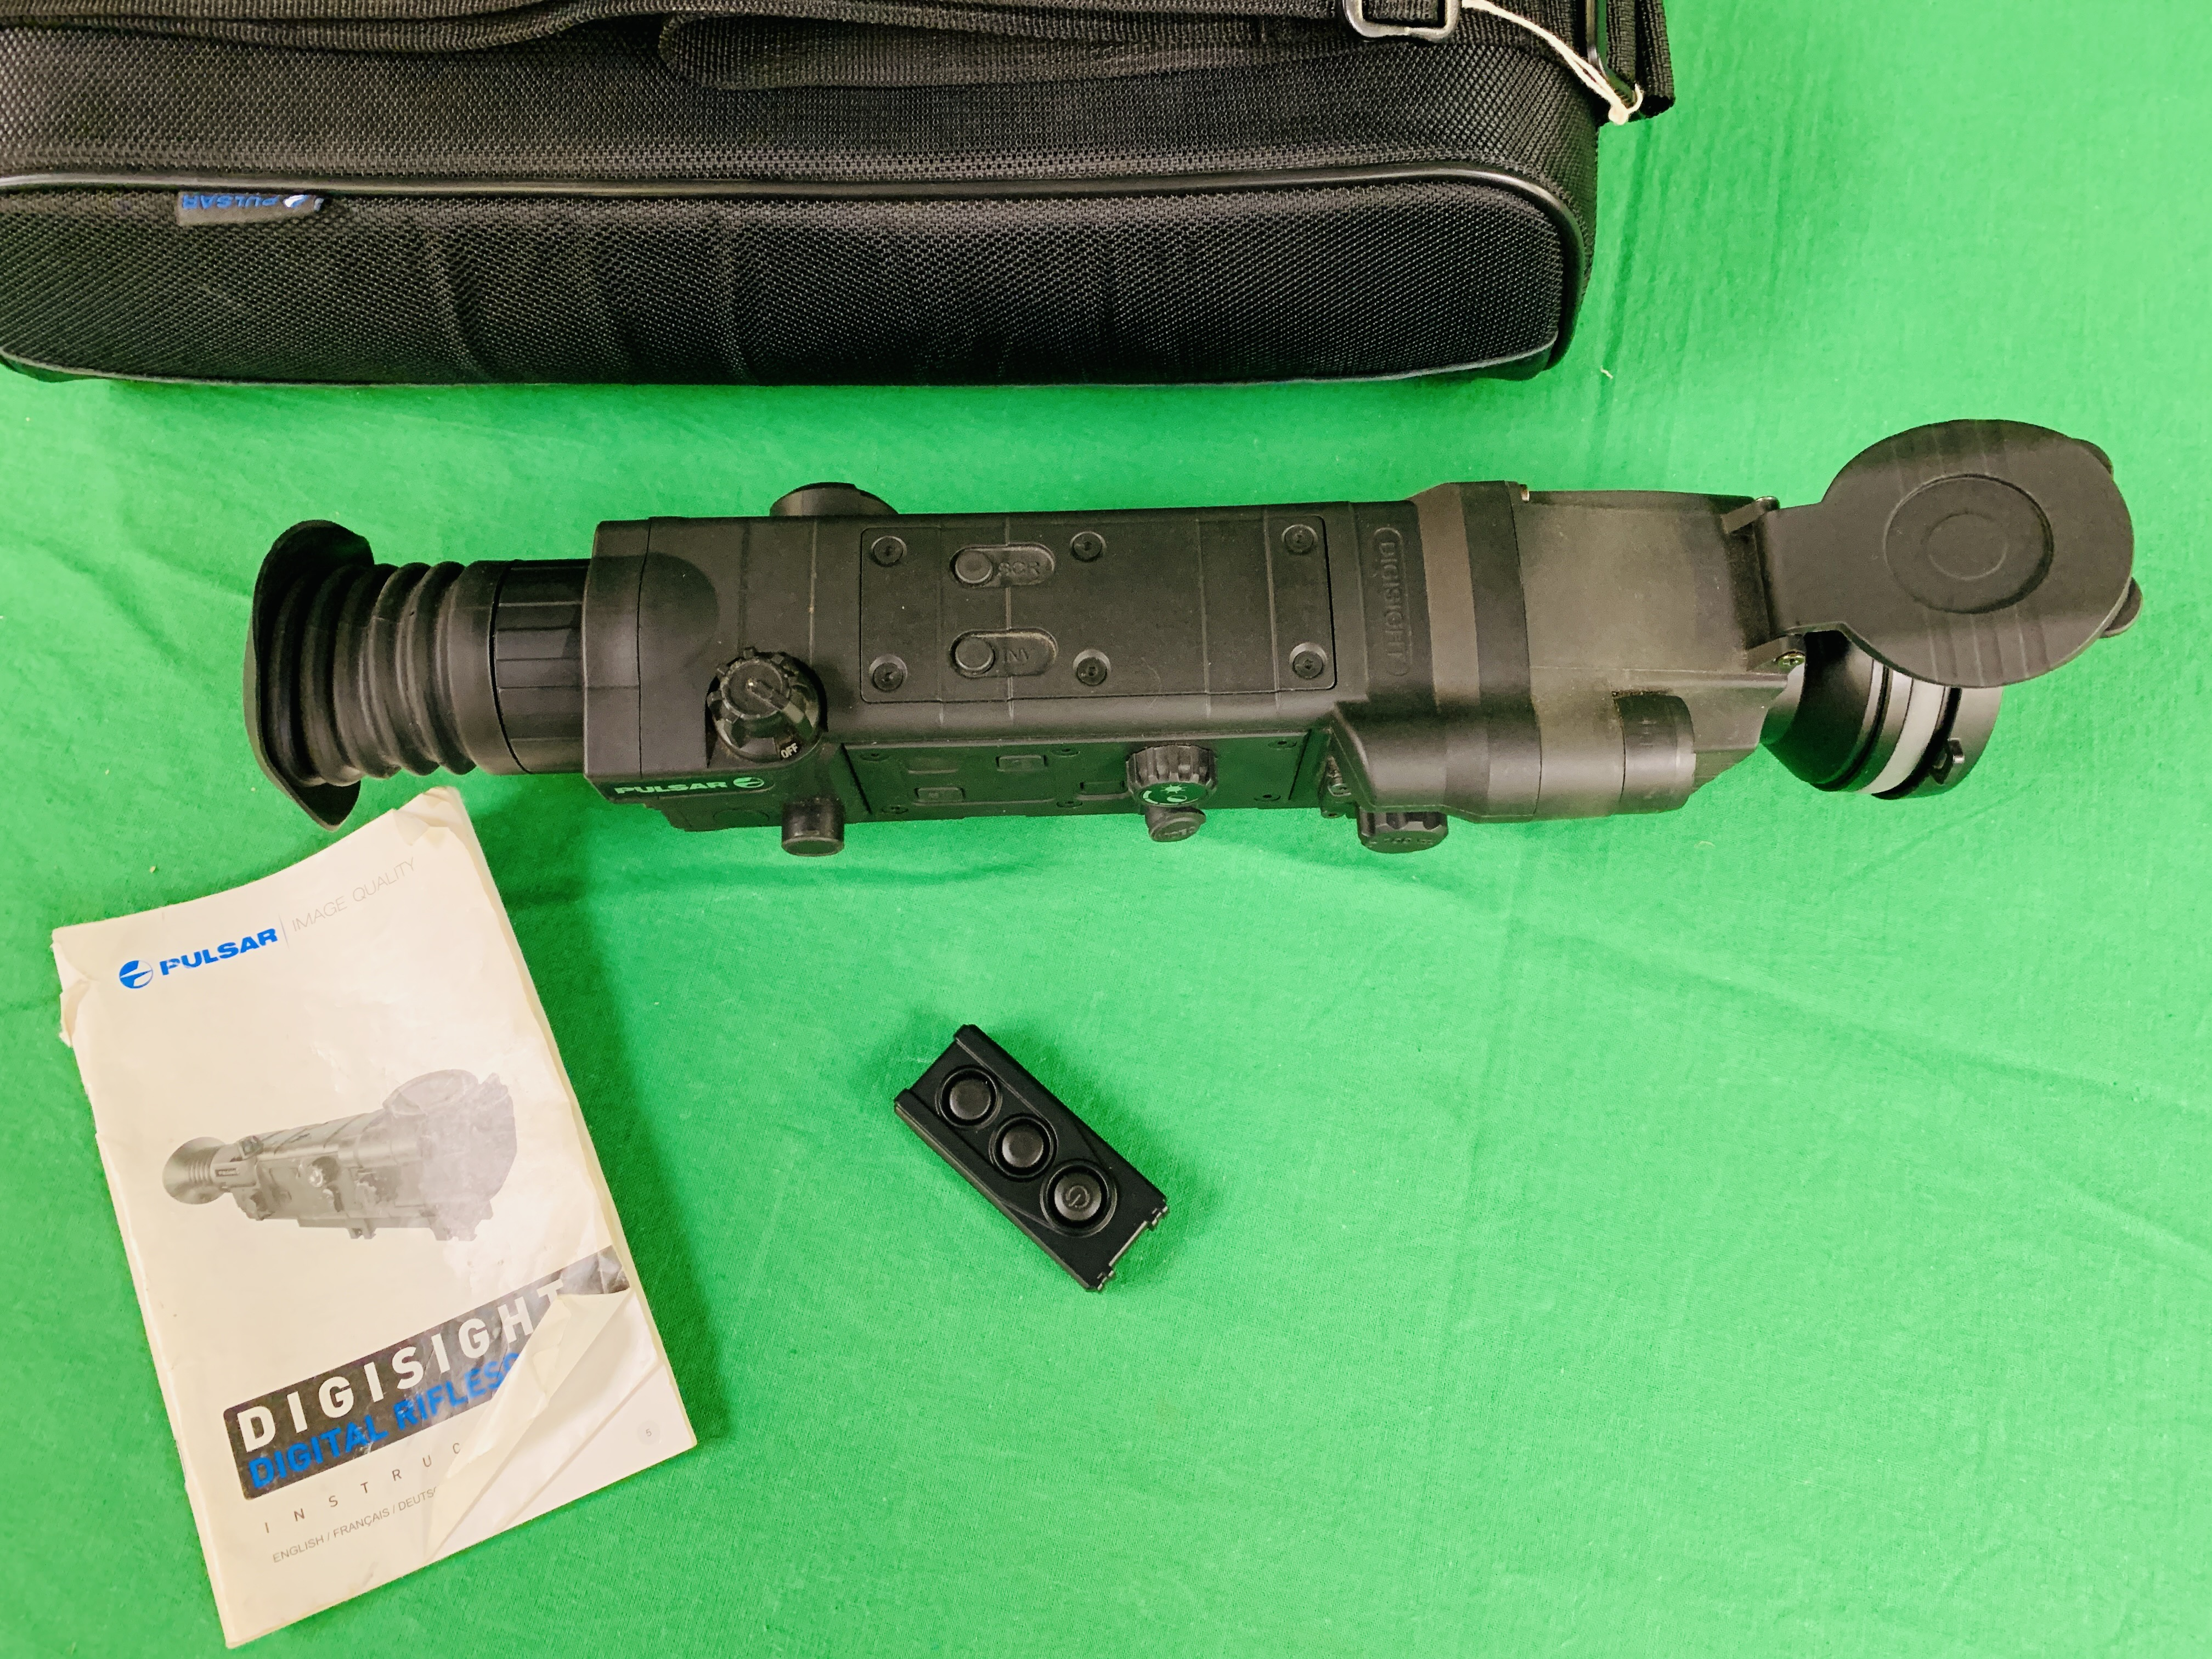 PULSAR N750 DIGI SIGHT RIFLE SCOPE COMPLETE WITH SONY TELE CONVERSION LENS ALONG WITH INSTRUCTION - Image 4 of 8